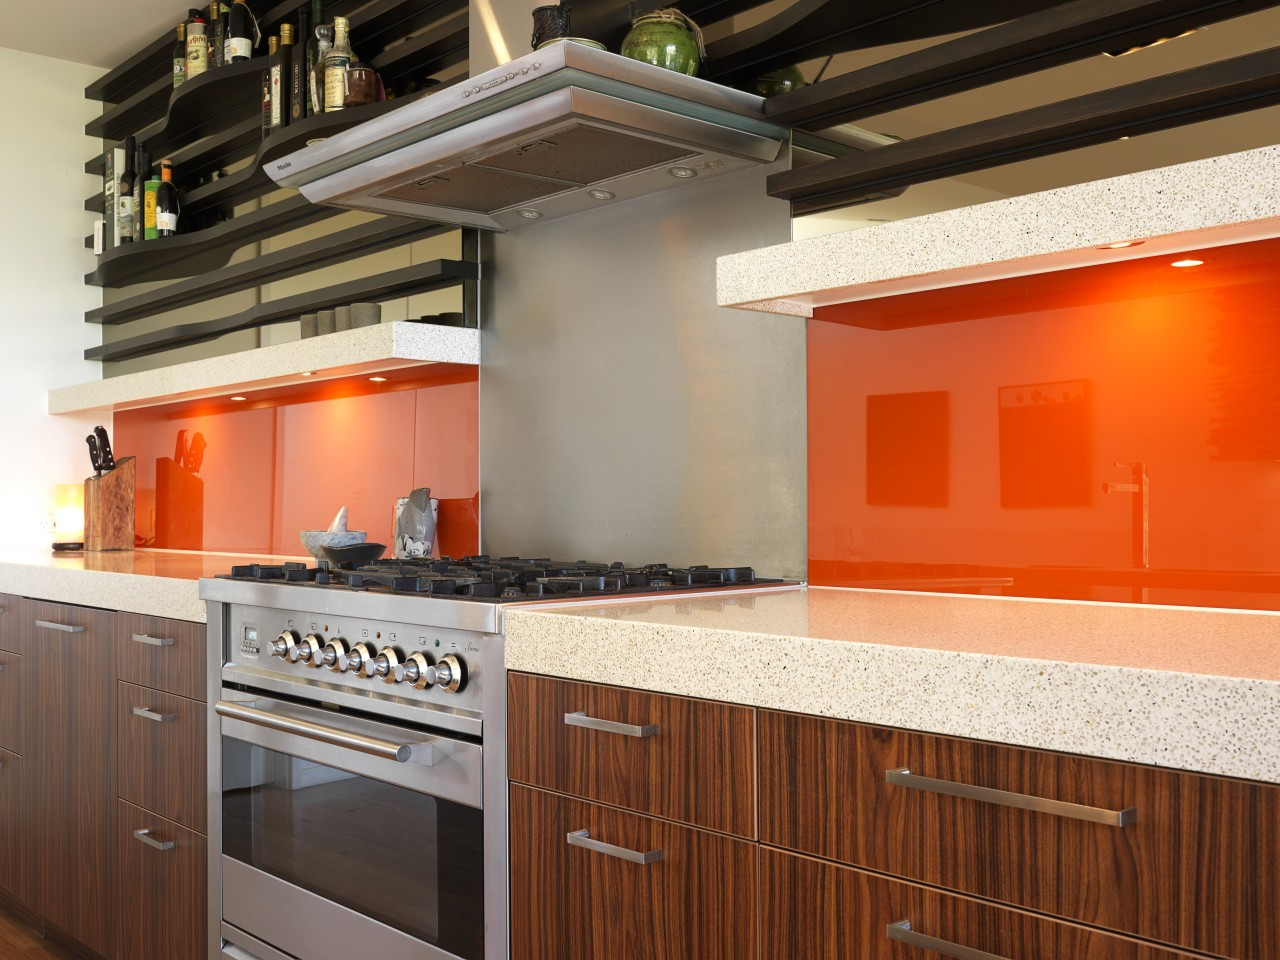 View of a cafe-styled kitchen which features CaesarStone cabinetry, countertop, interior design, kitchen, room, brown